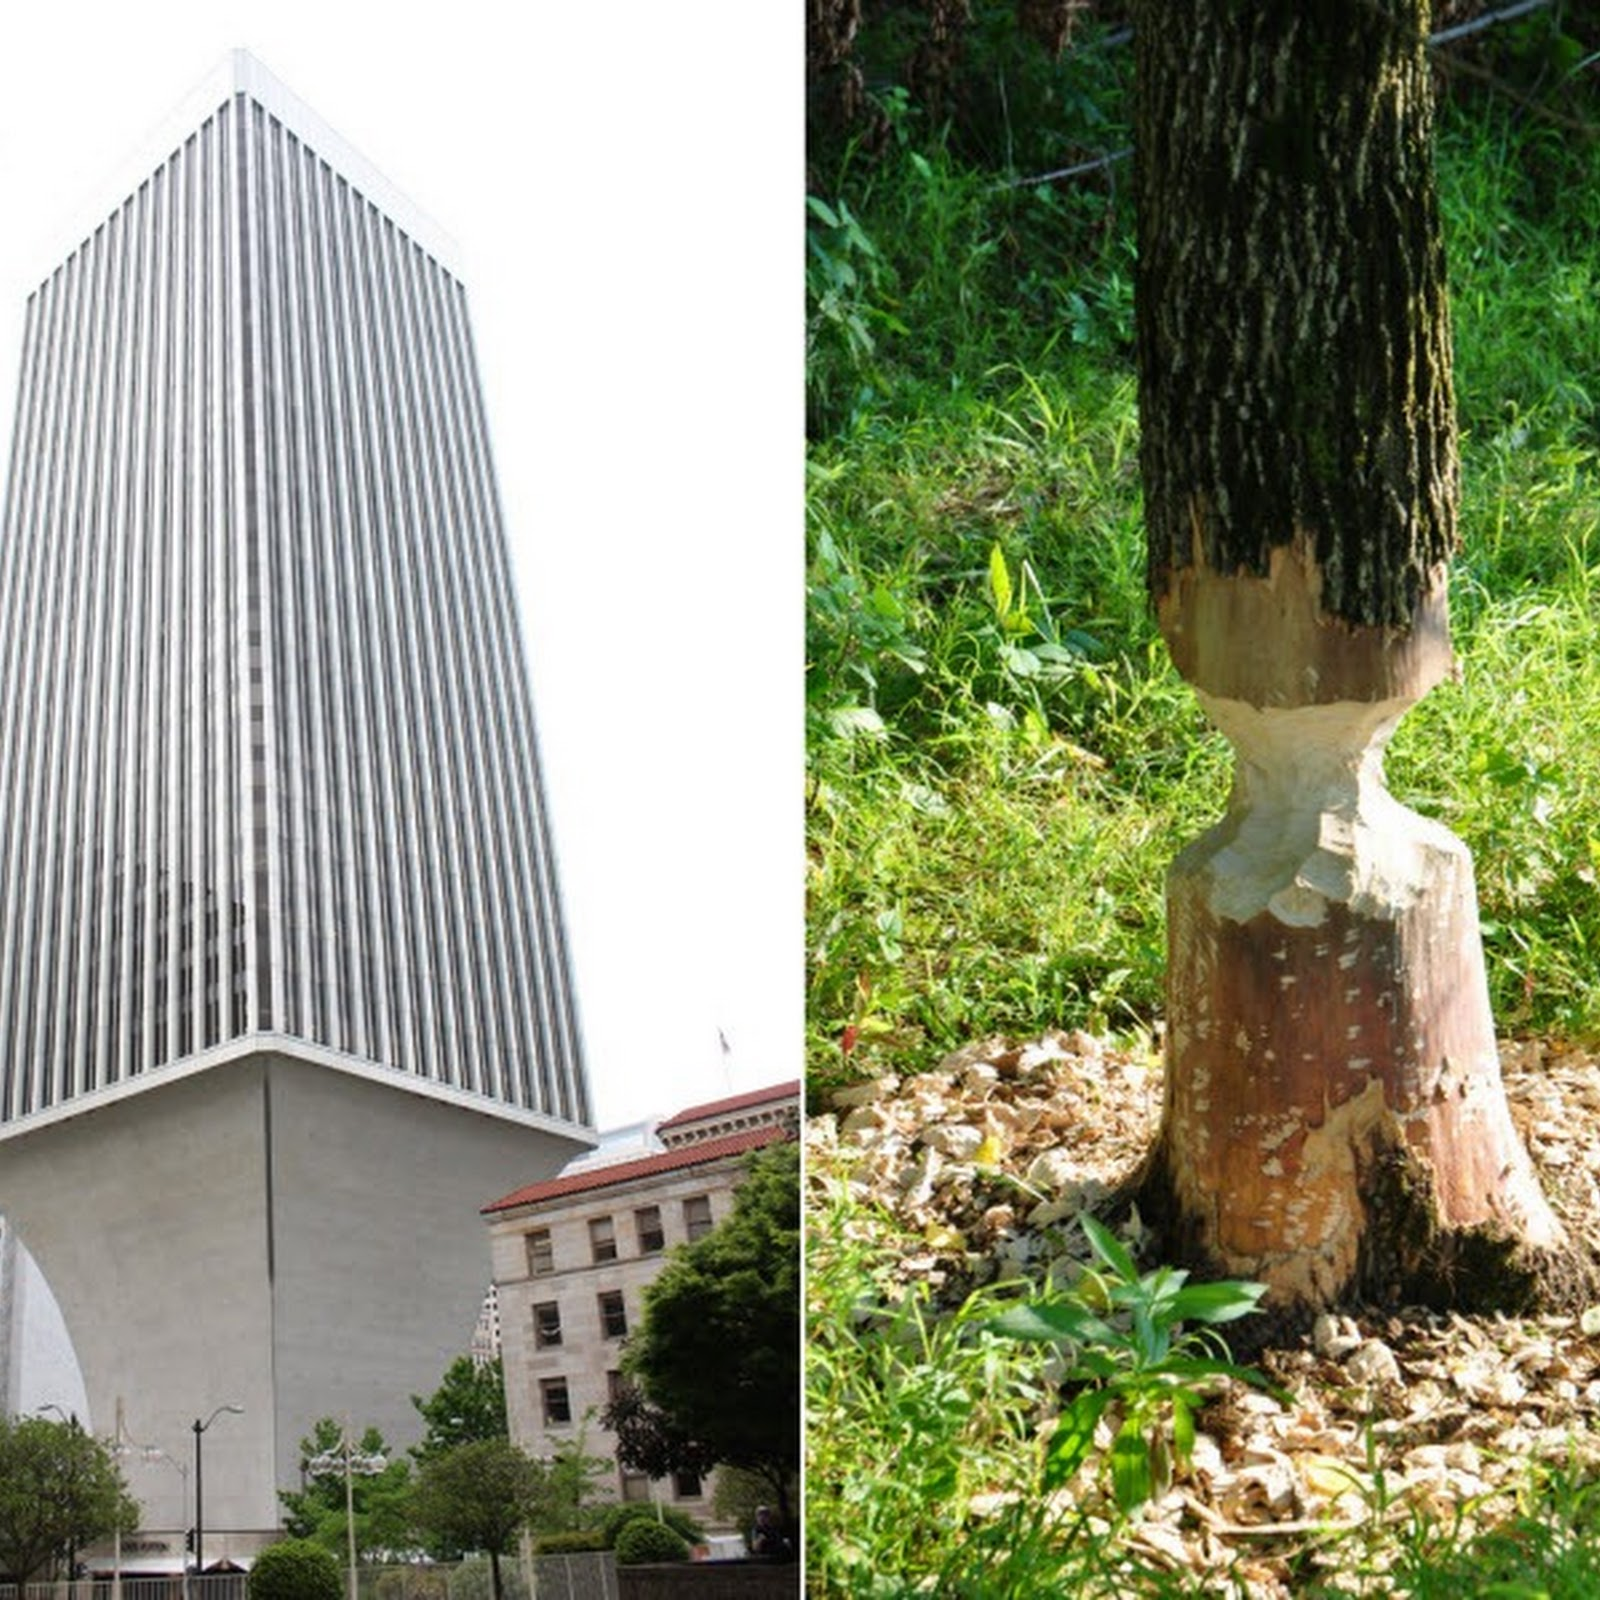 Rainier Tower, or The Beaver Building